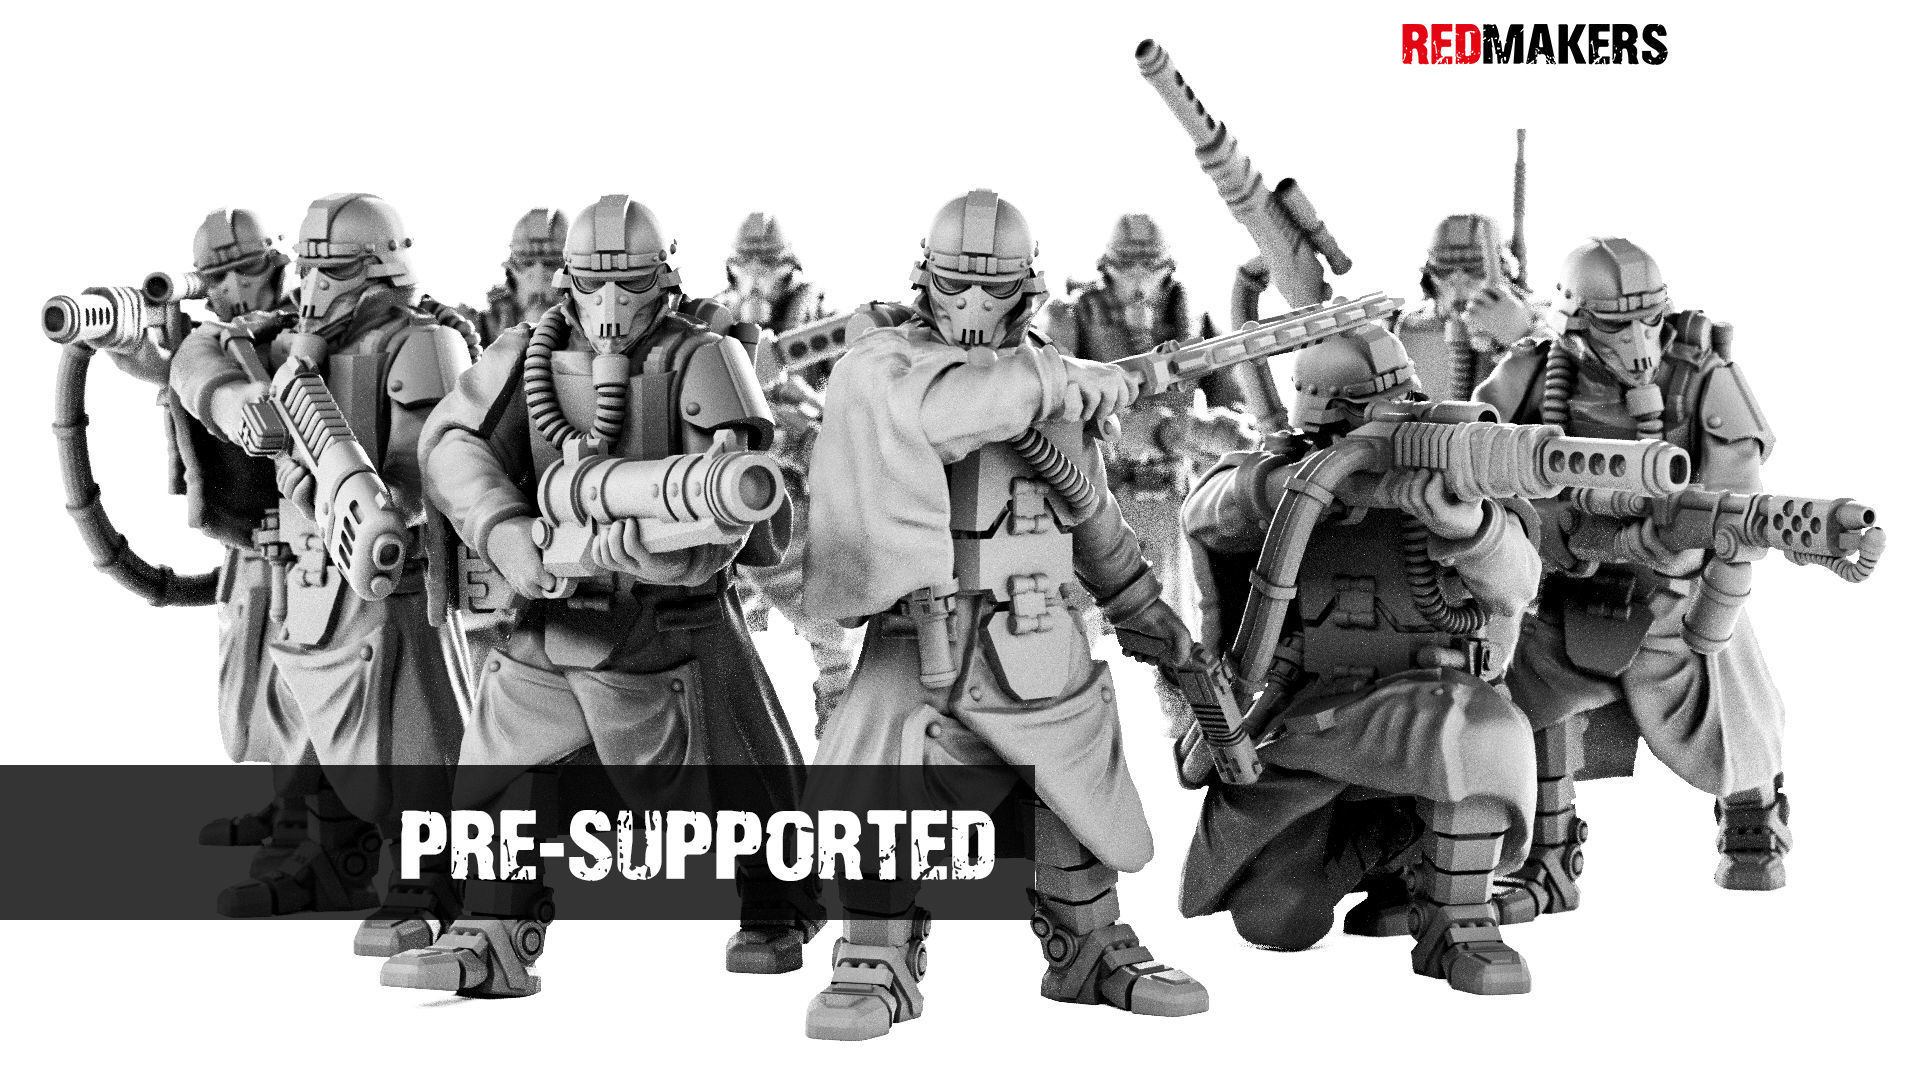 Death Squad Grenadiers of the Imperial Force